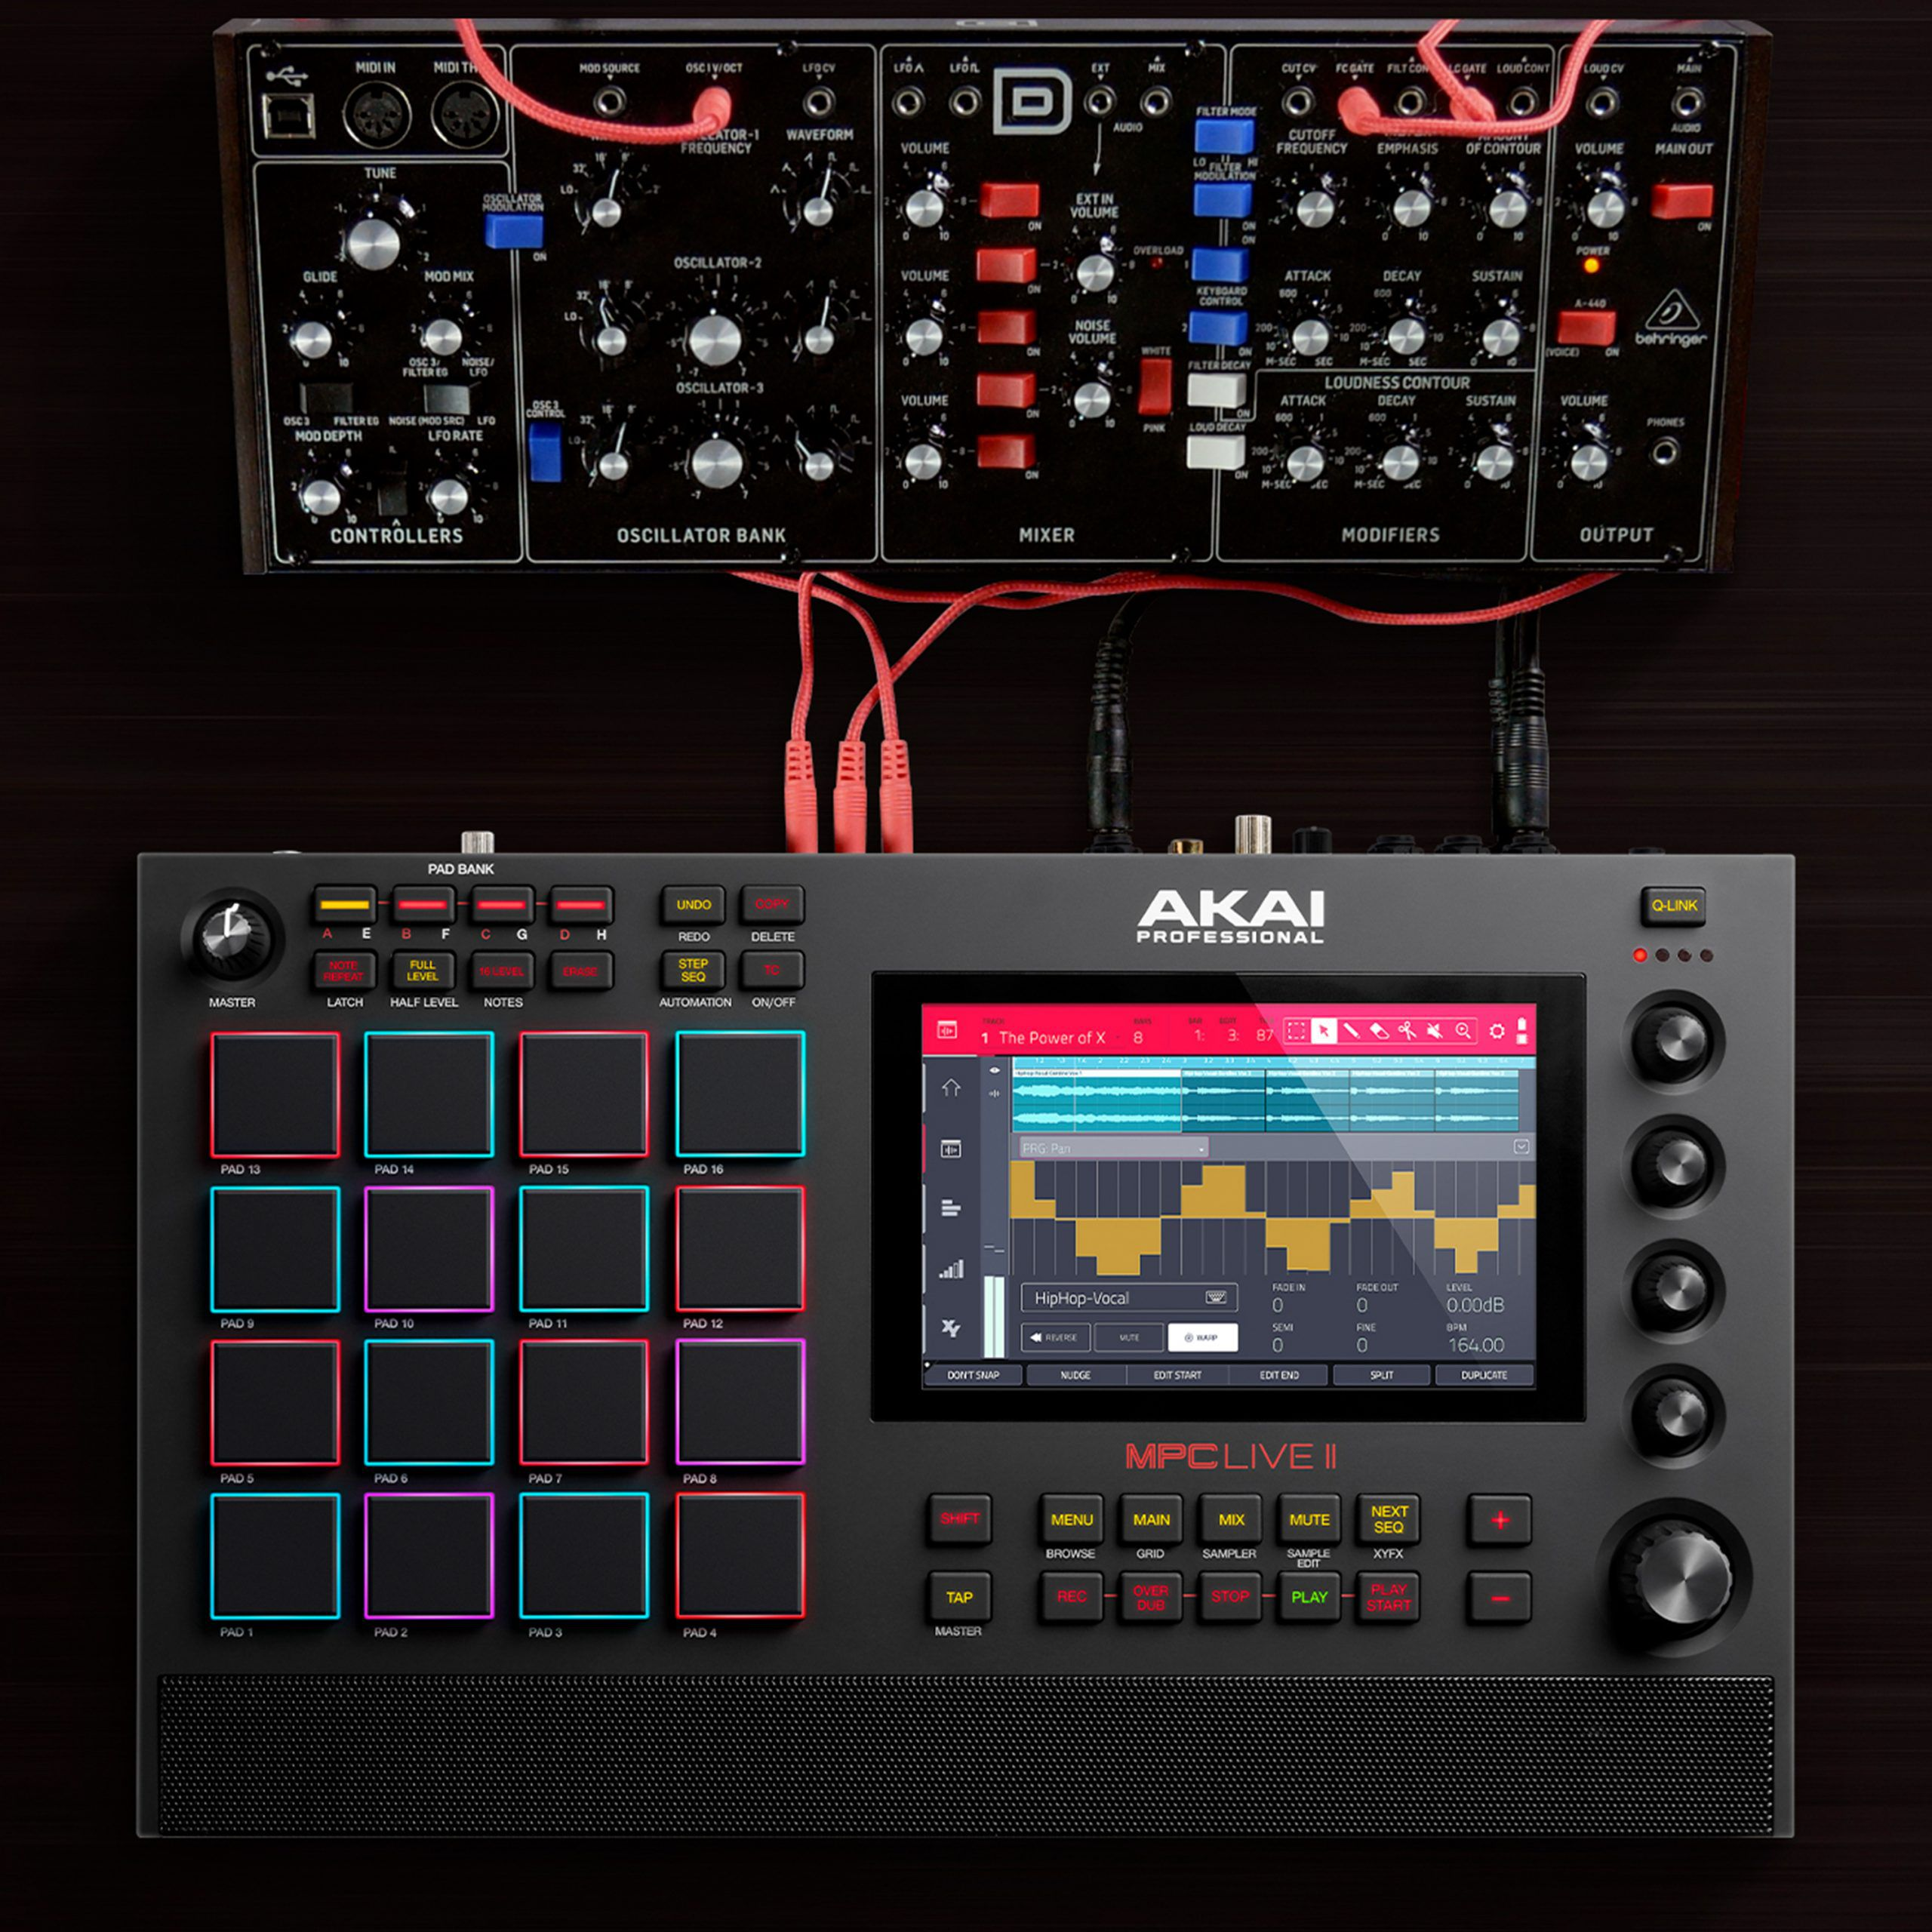 Akai's new MPC Live II: a standalone tool with built-in monitors